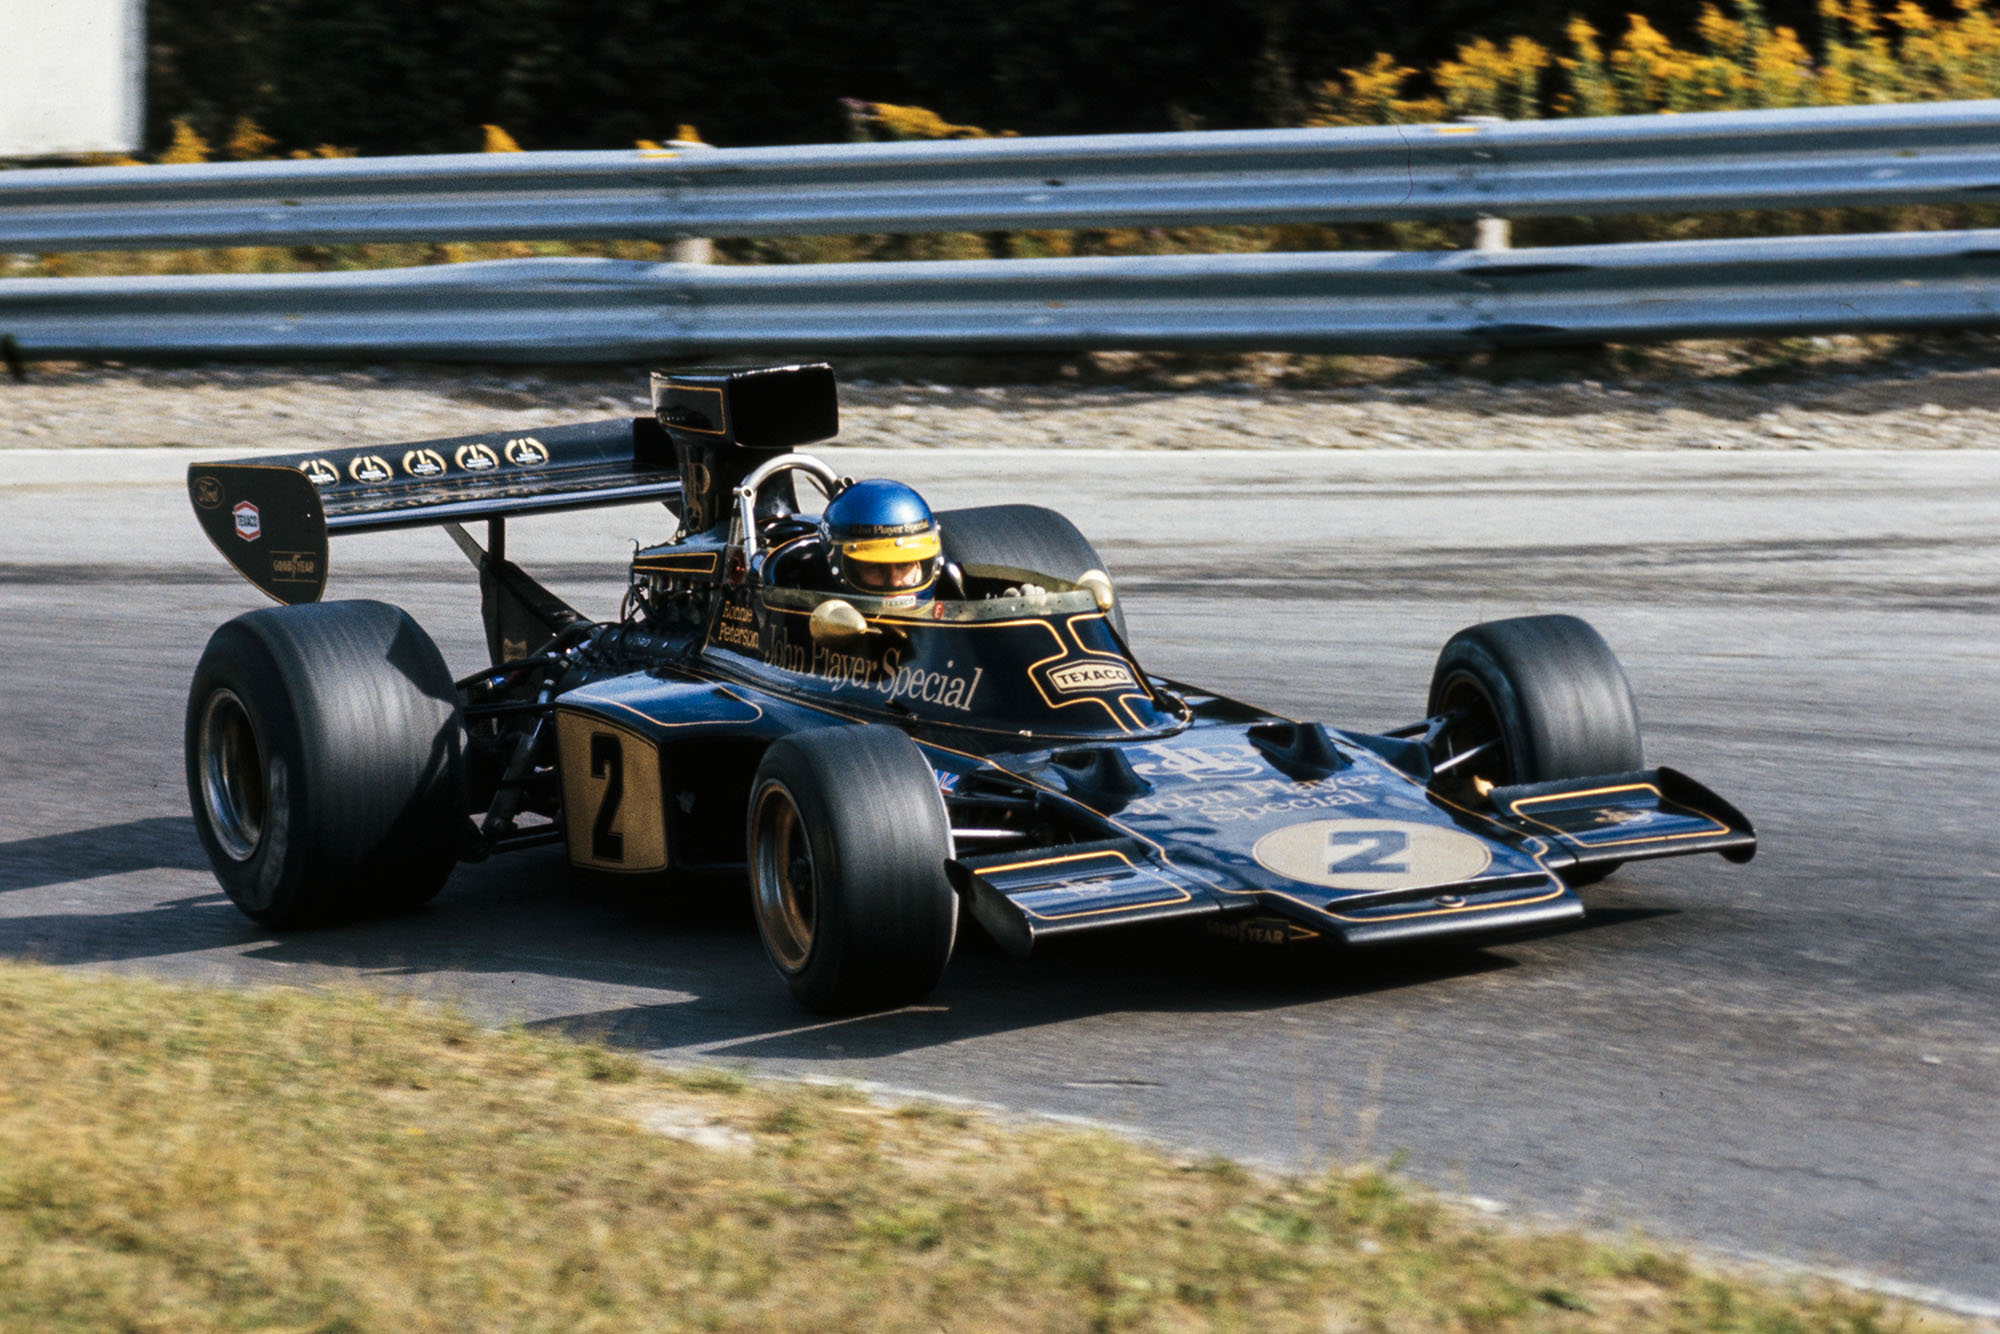 Ronnie Peterson shows typical commitment as he drives his Lotus at Mosport Park during the 1973 Canadian Grand Prix.